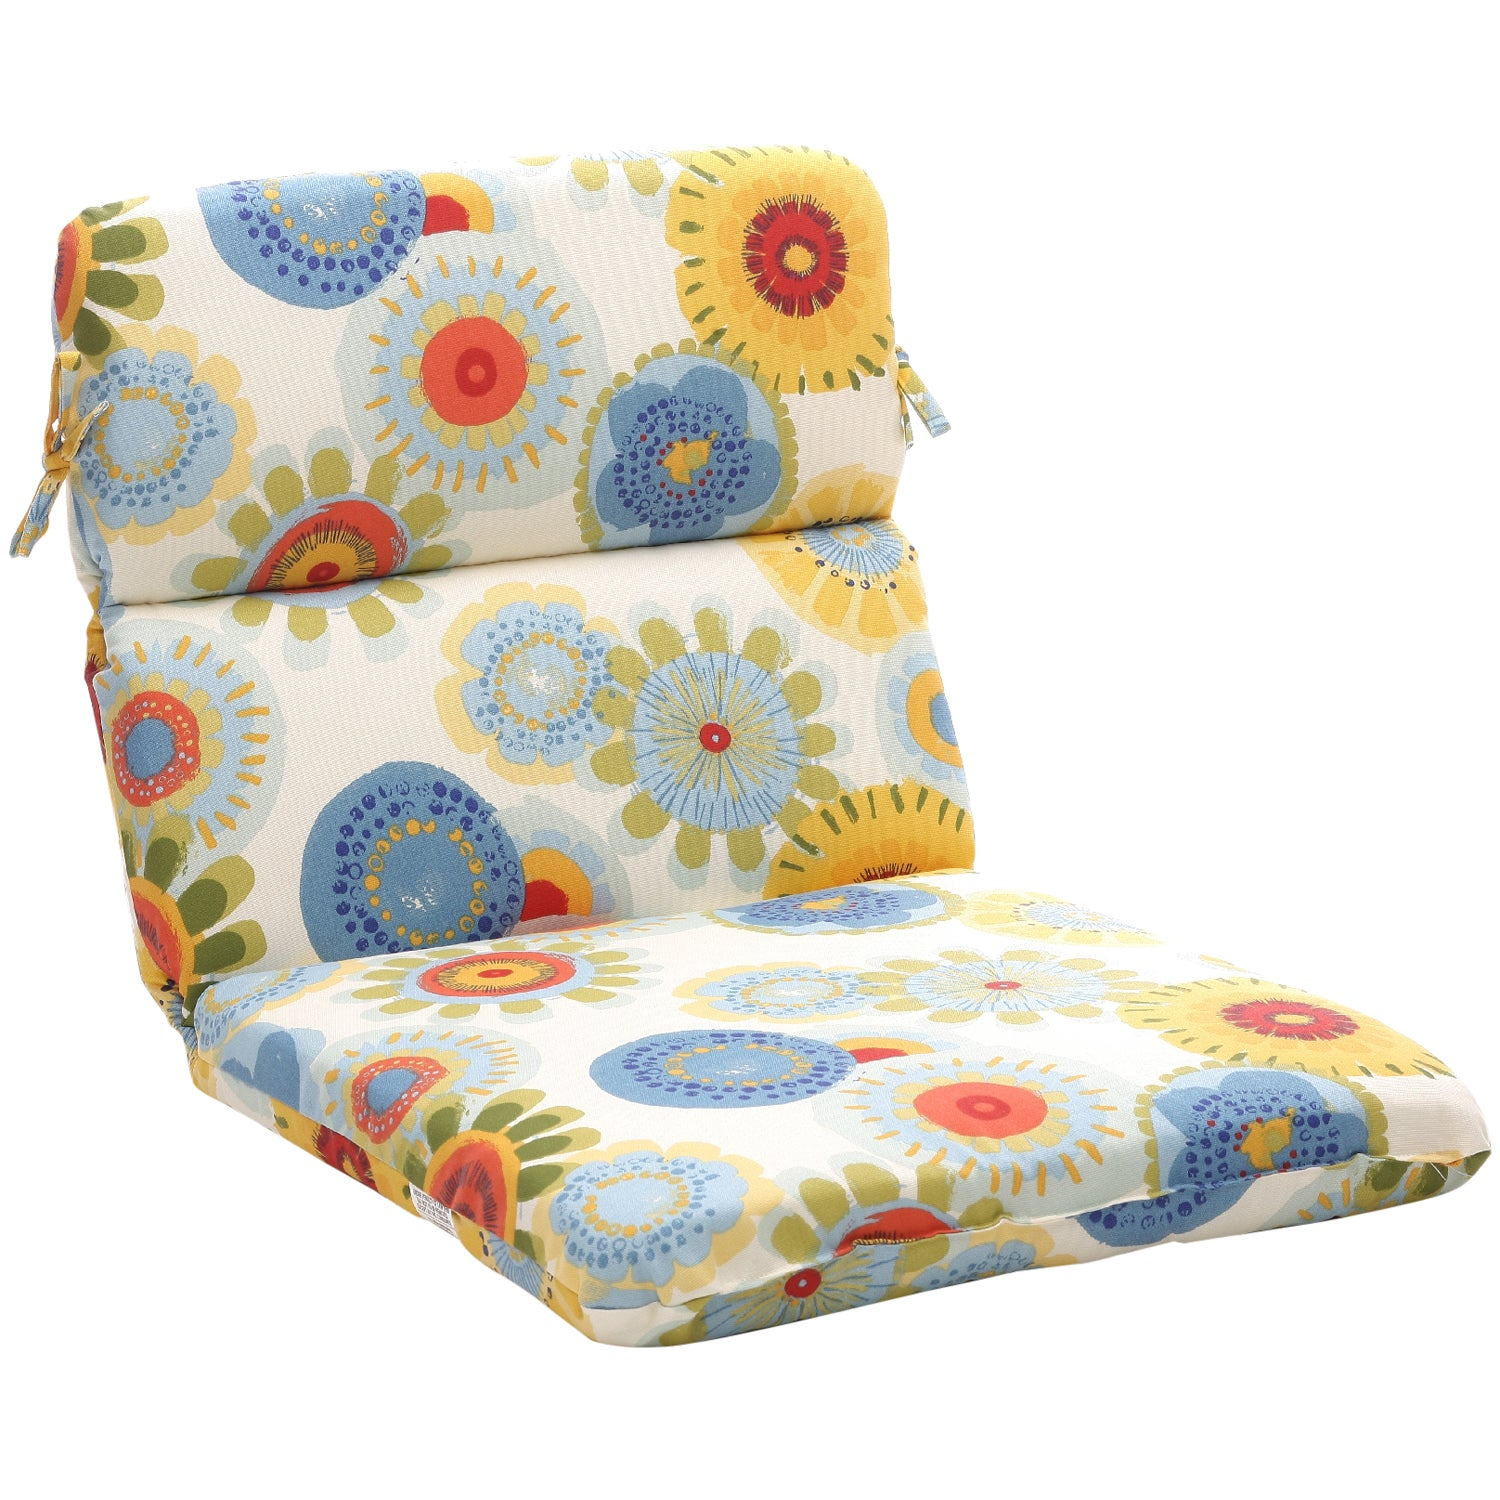 Shop Polyester Rounded Multicolored Floral Outdoor Chair Cushion